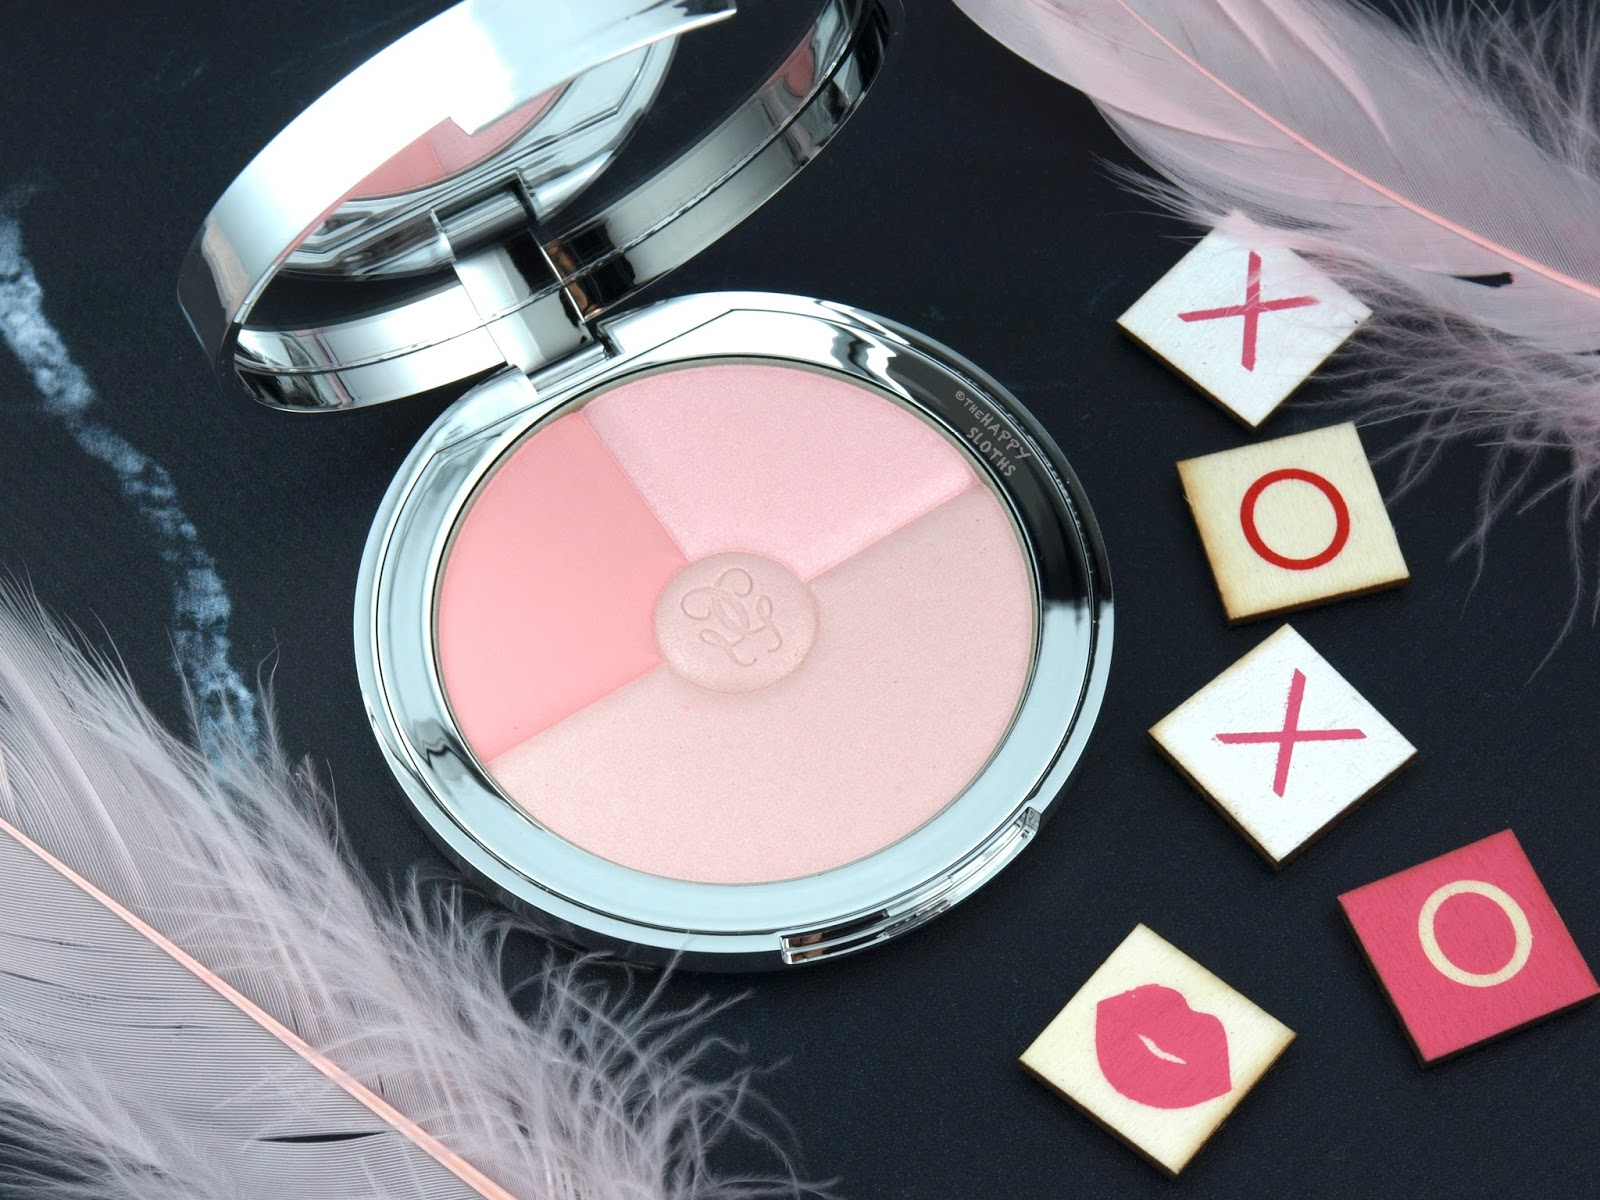 Guerlain Spring 2018 Collection | Meteorites Heart Shape Face Powder: Review and Swatches